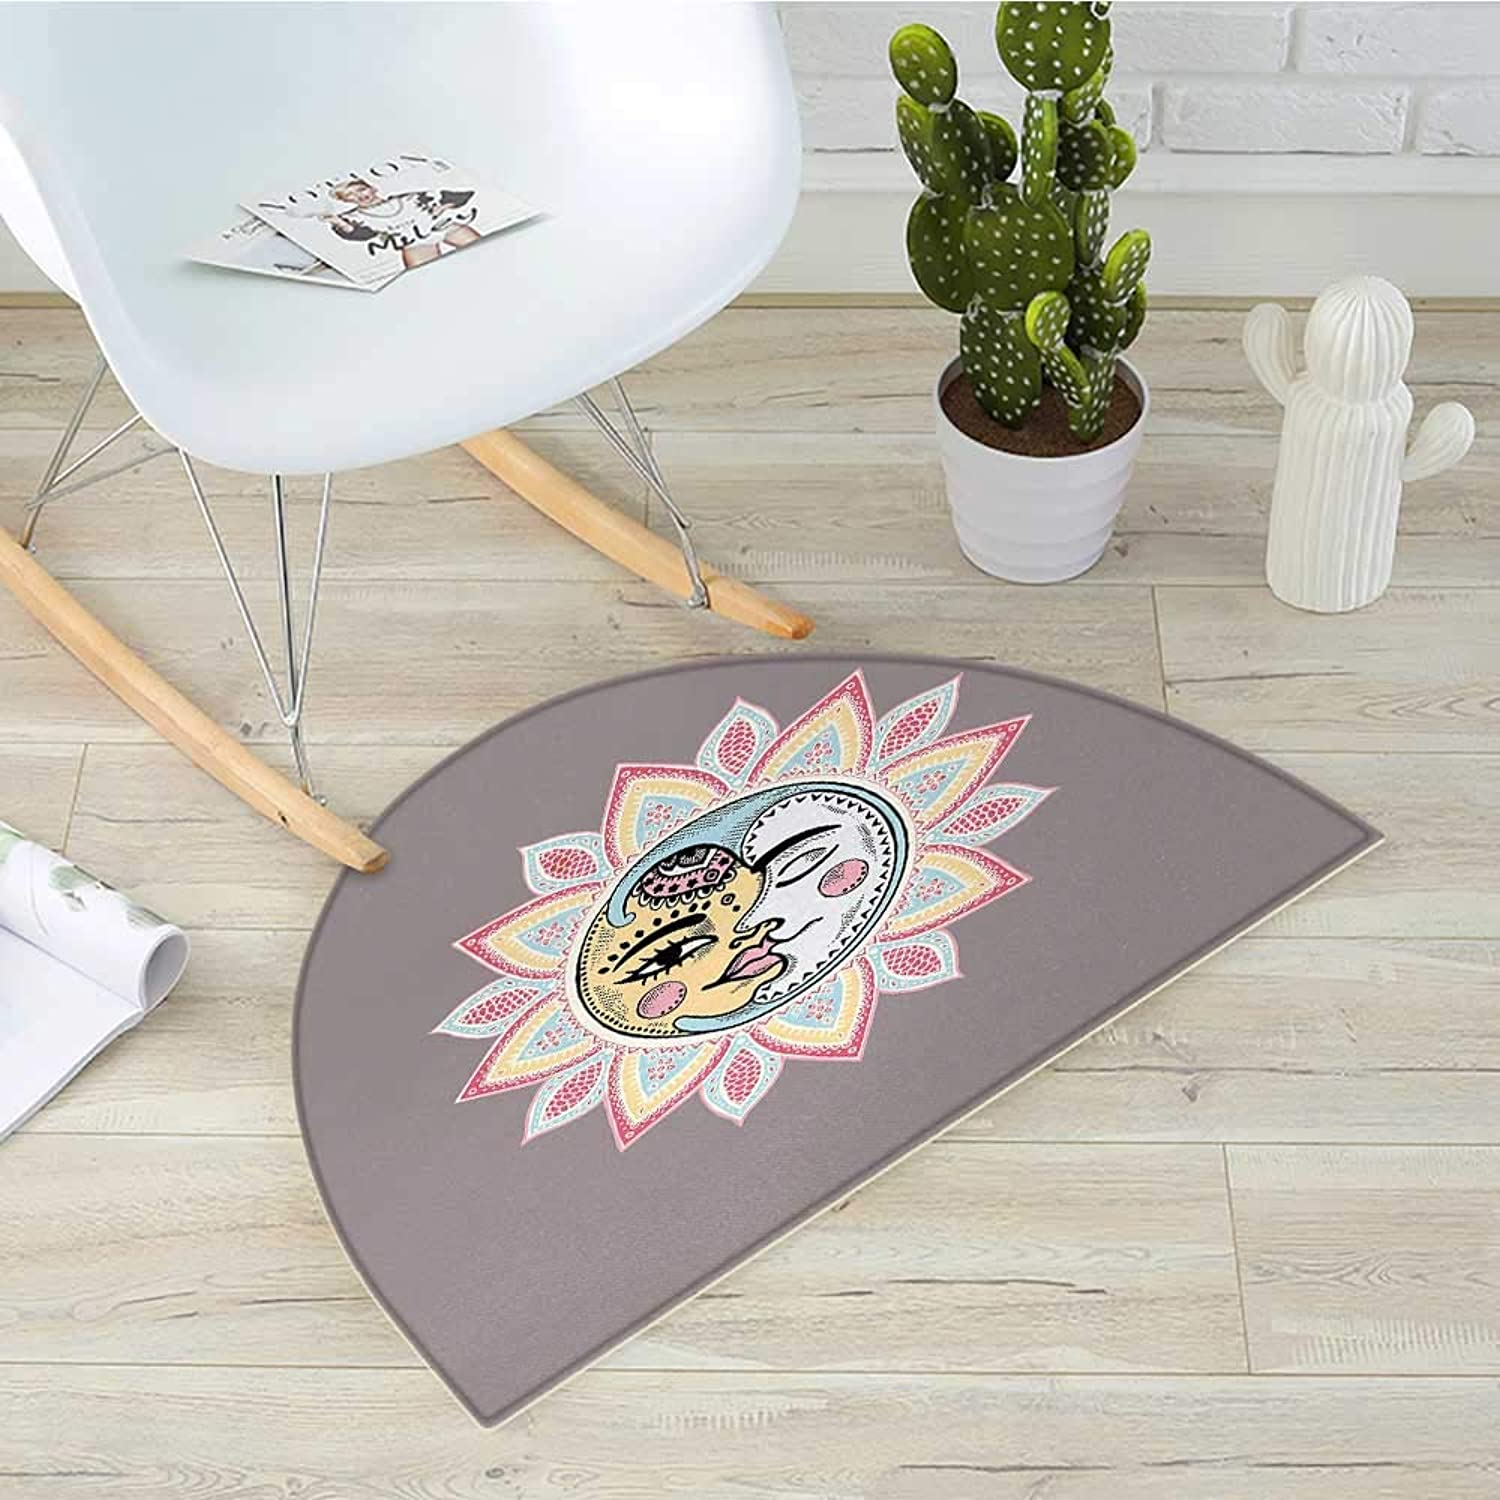 Sun Semicircular CushionSun and Moon with Faces Abstract Floral Pattern Foliage Leaves Design Ethnic Entry Door Mat H 43.3  xD 64.9  Dimgrey Multicolor